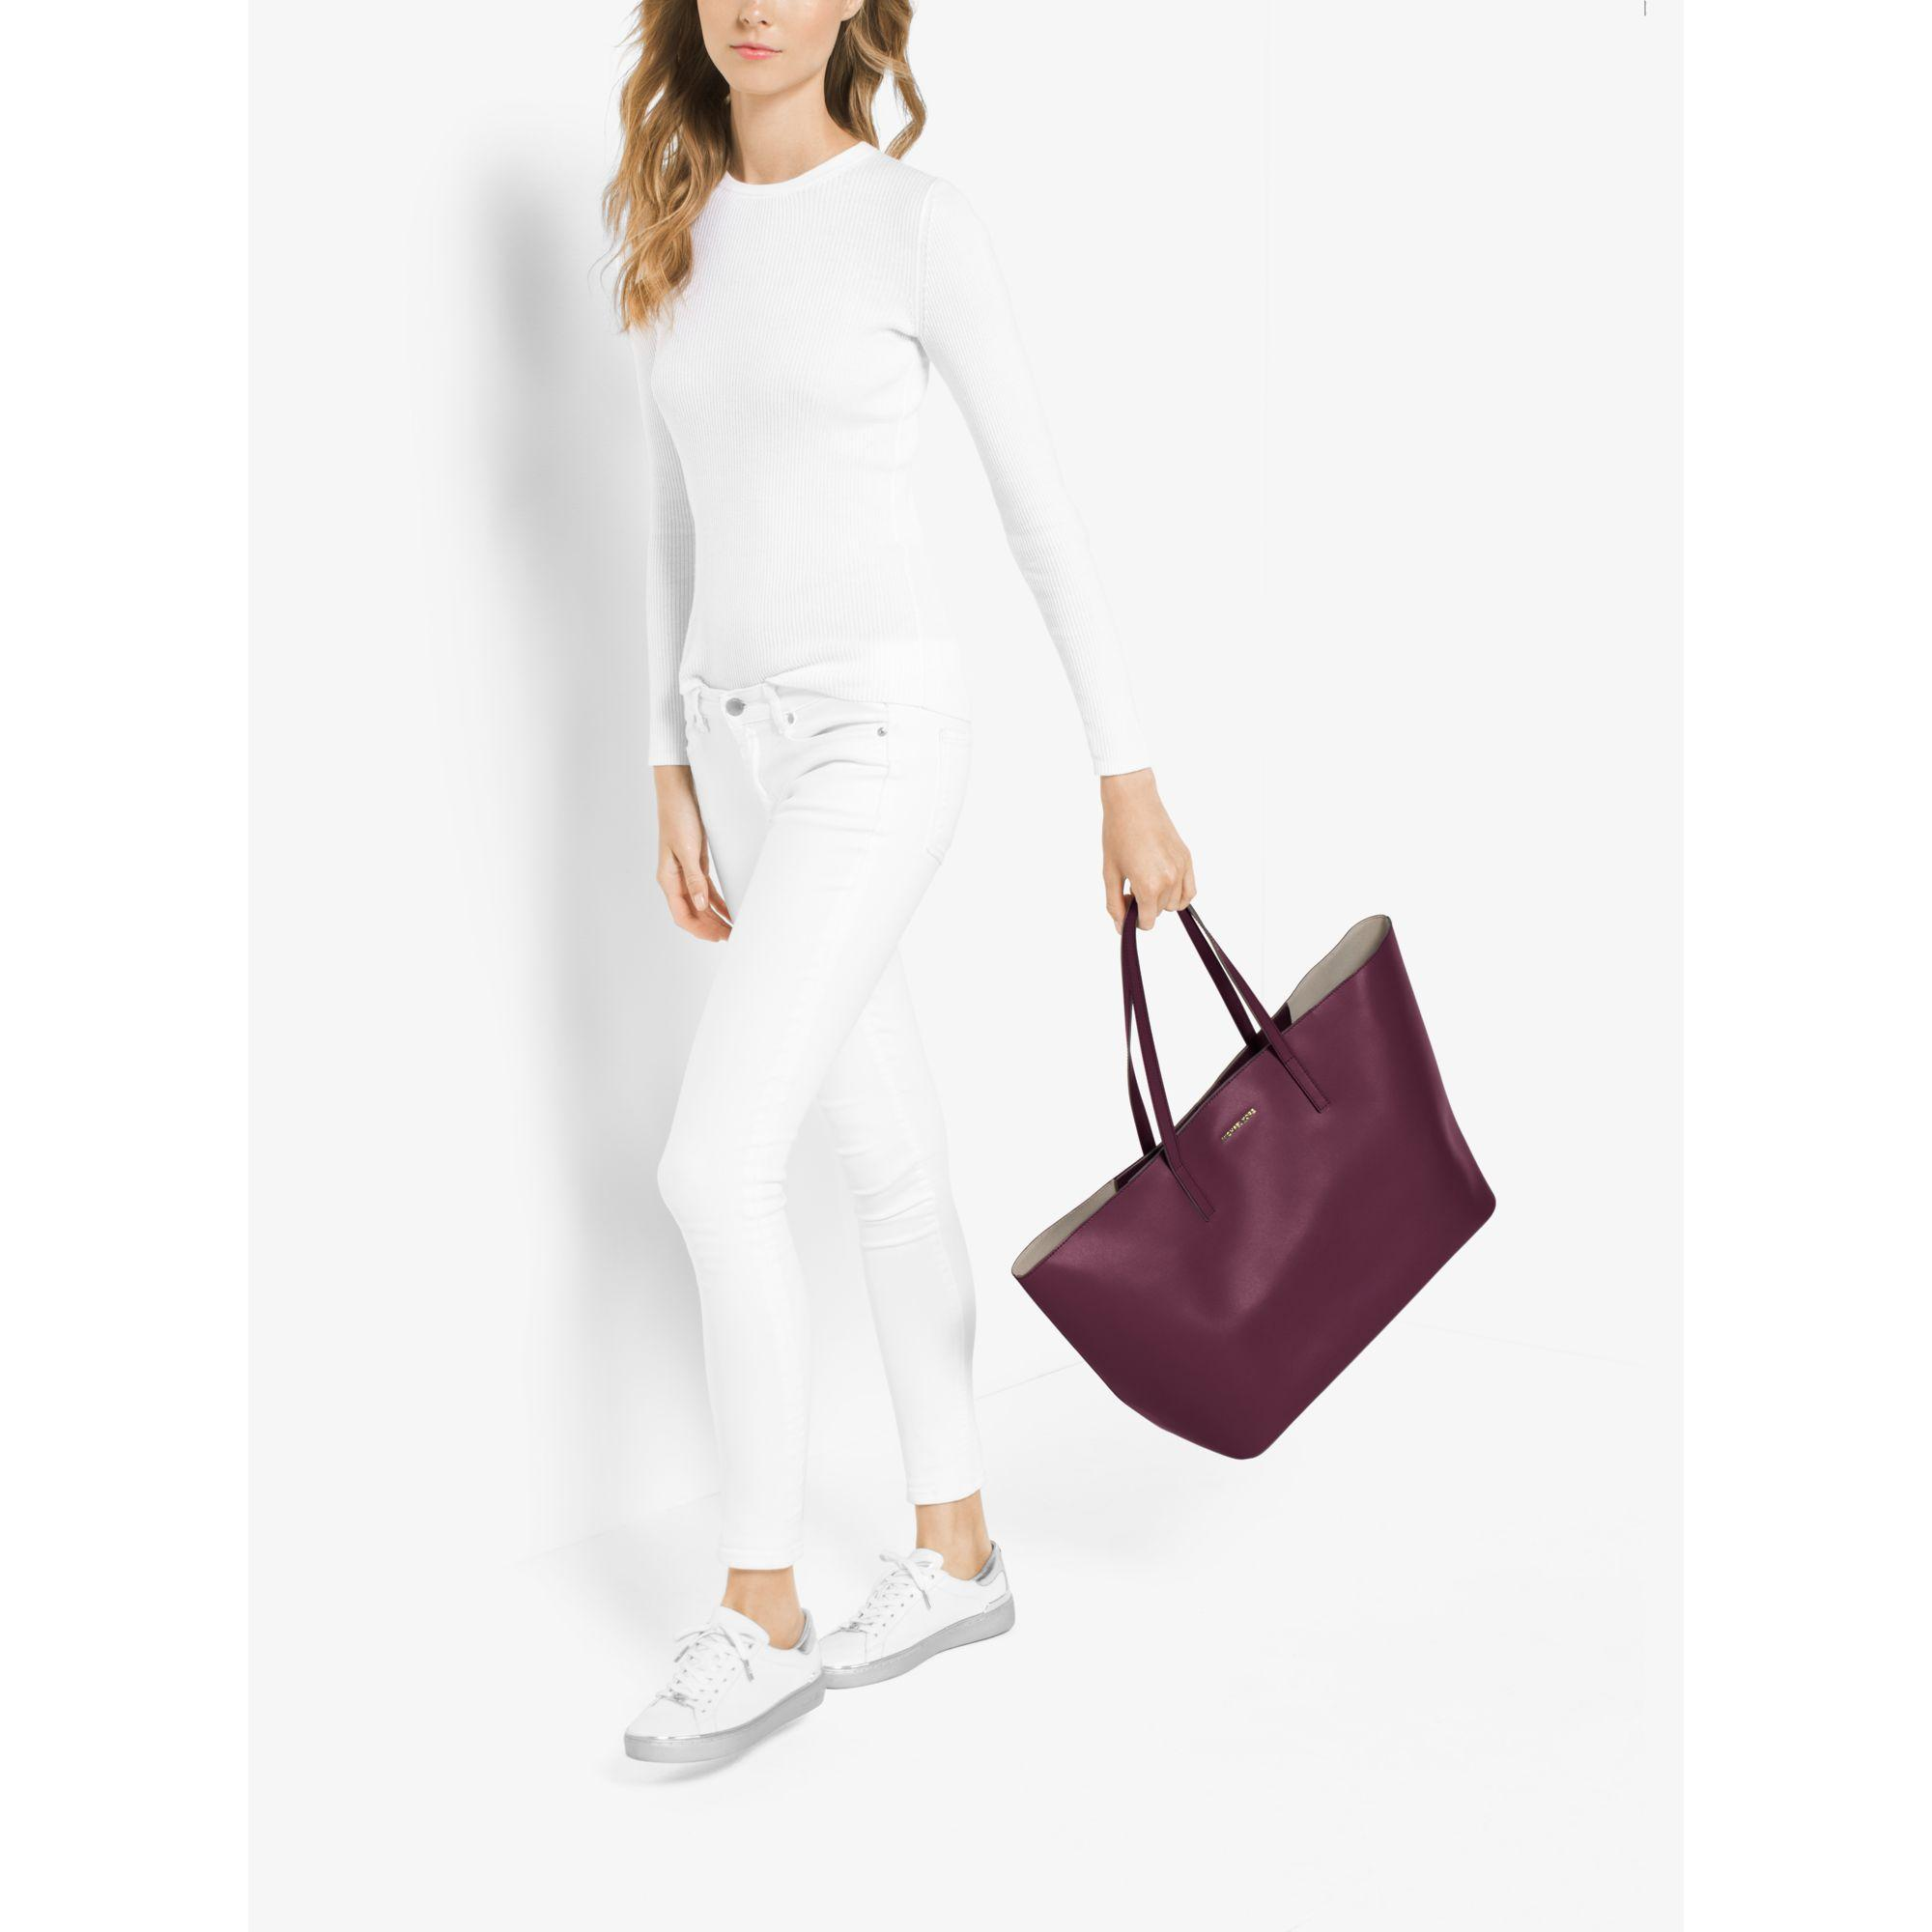 56c7176d87e5 Lyst - Michael Kors Emry Extra-large Leather Tote in Purple